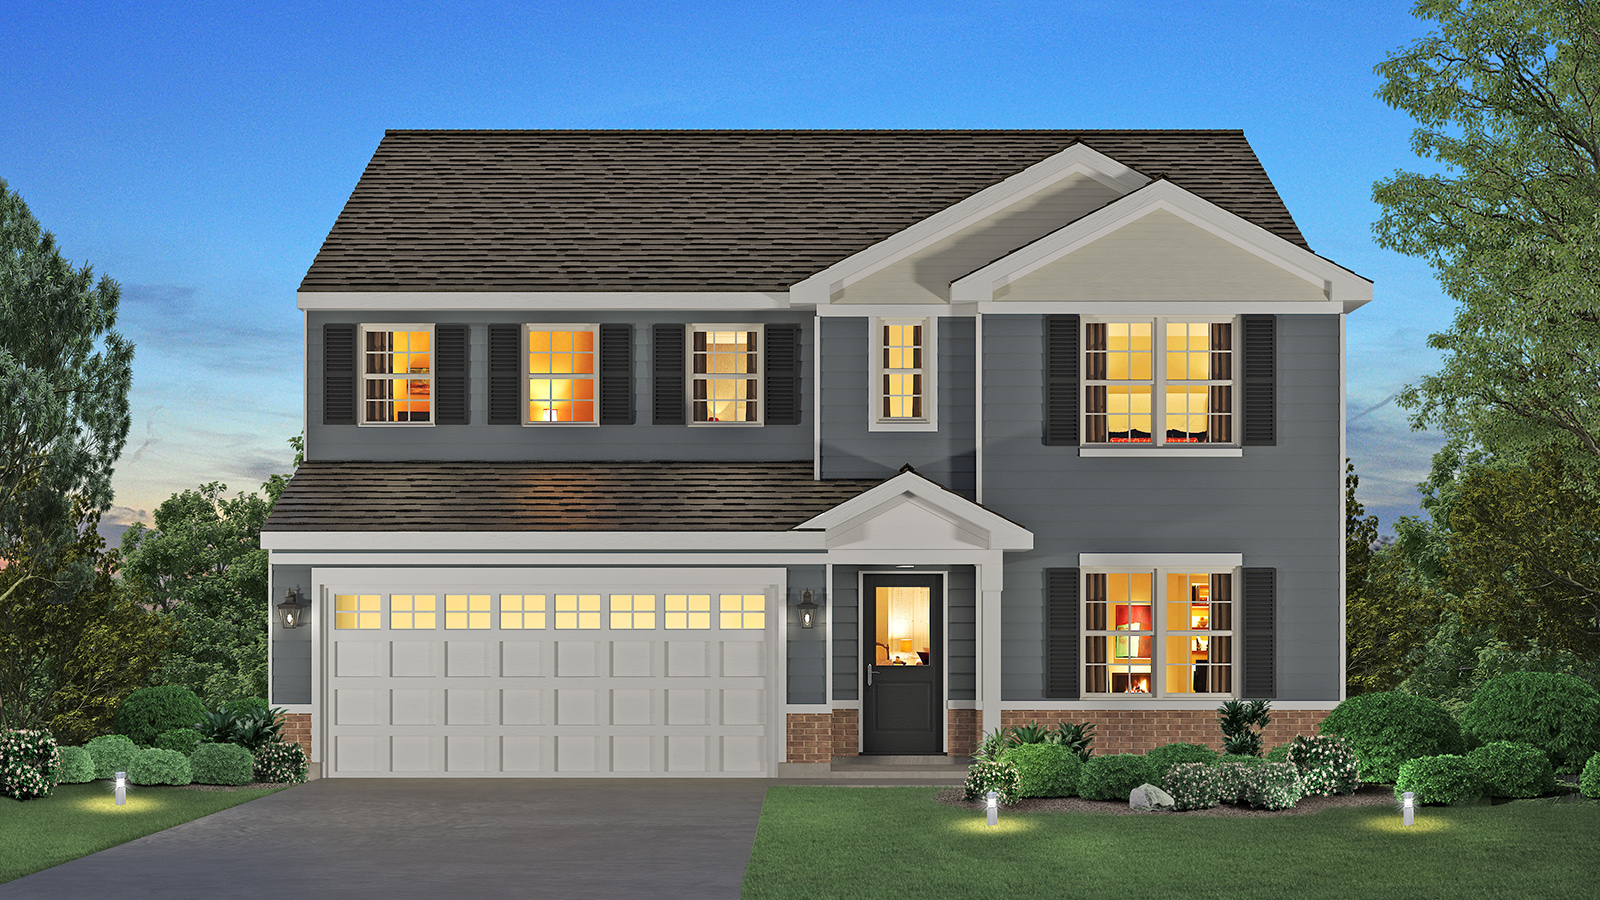 New Homes In Sanctuary At Bull Valley Single Family Homes Woodstock Il D R Horton